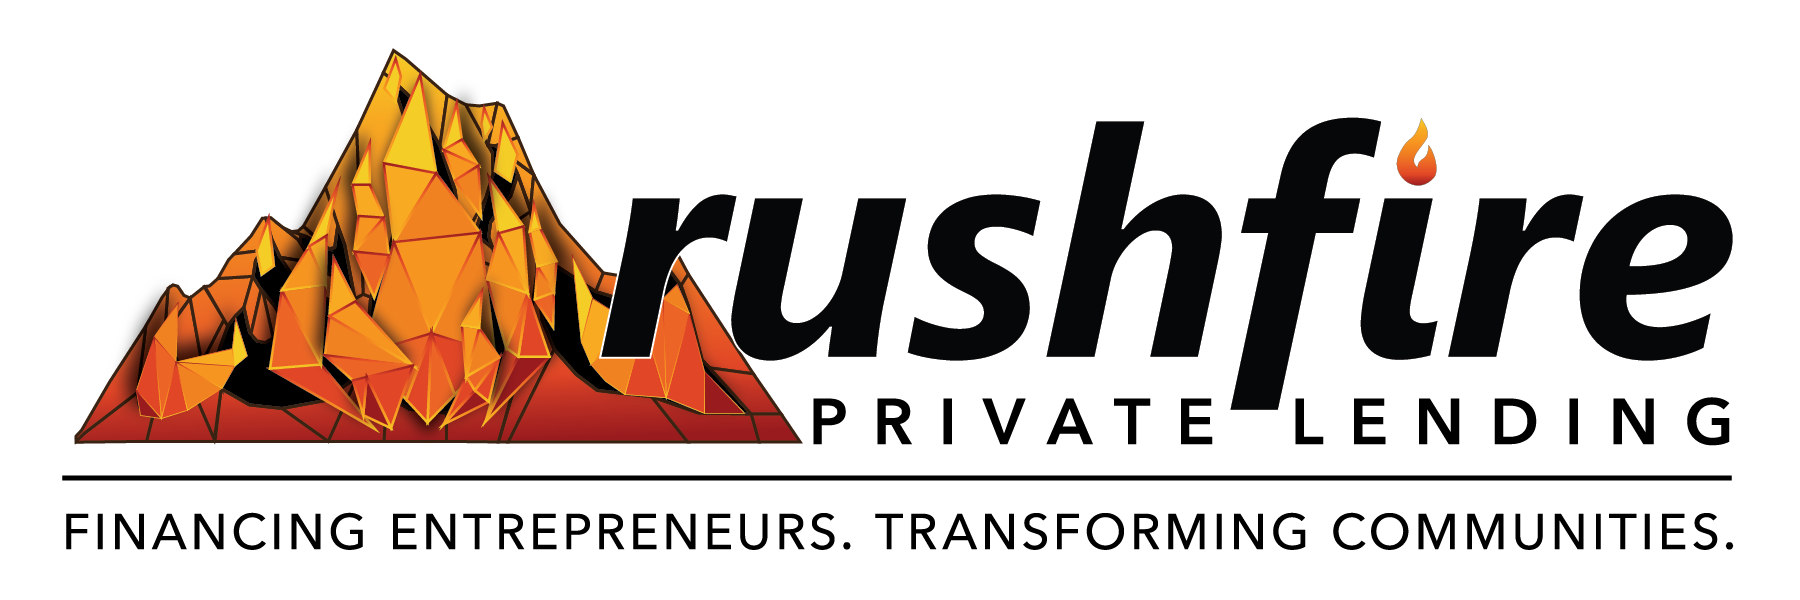 RushFire Private Lending logo_wide format